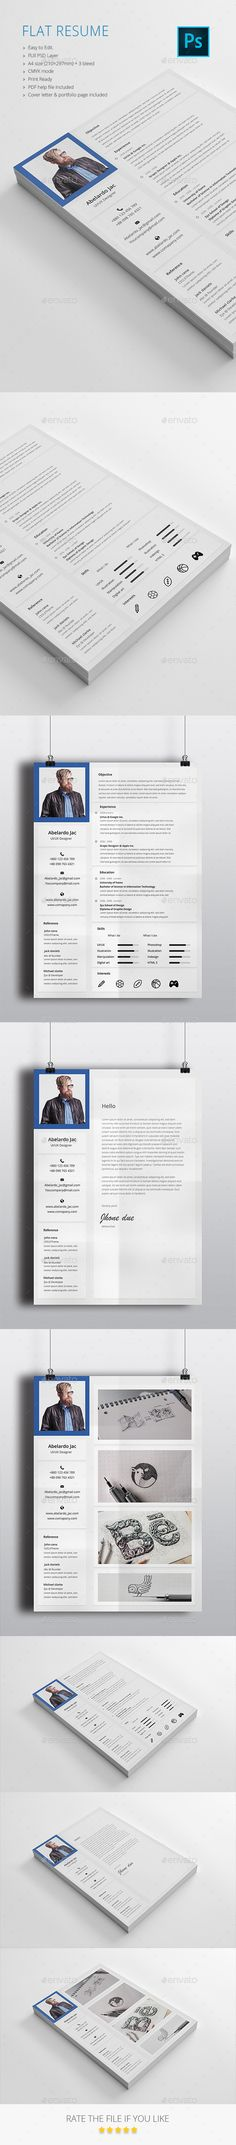 Simple Resume 5 Simple resume, Simple resume template and Font logo - resume print out